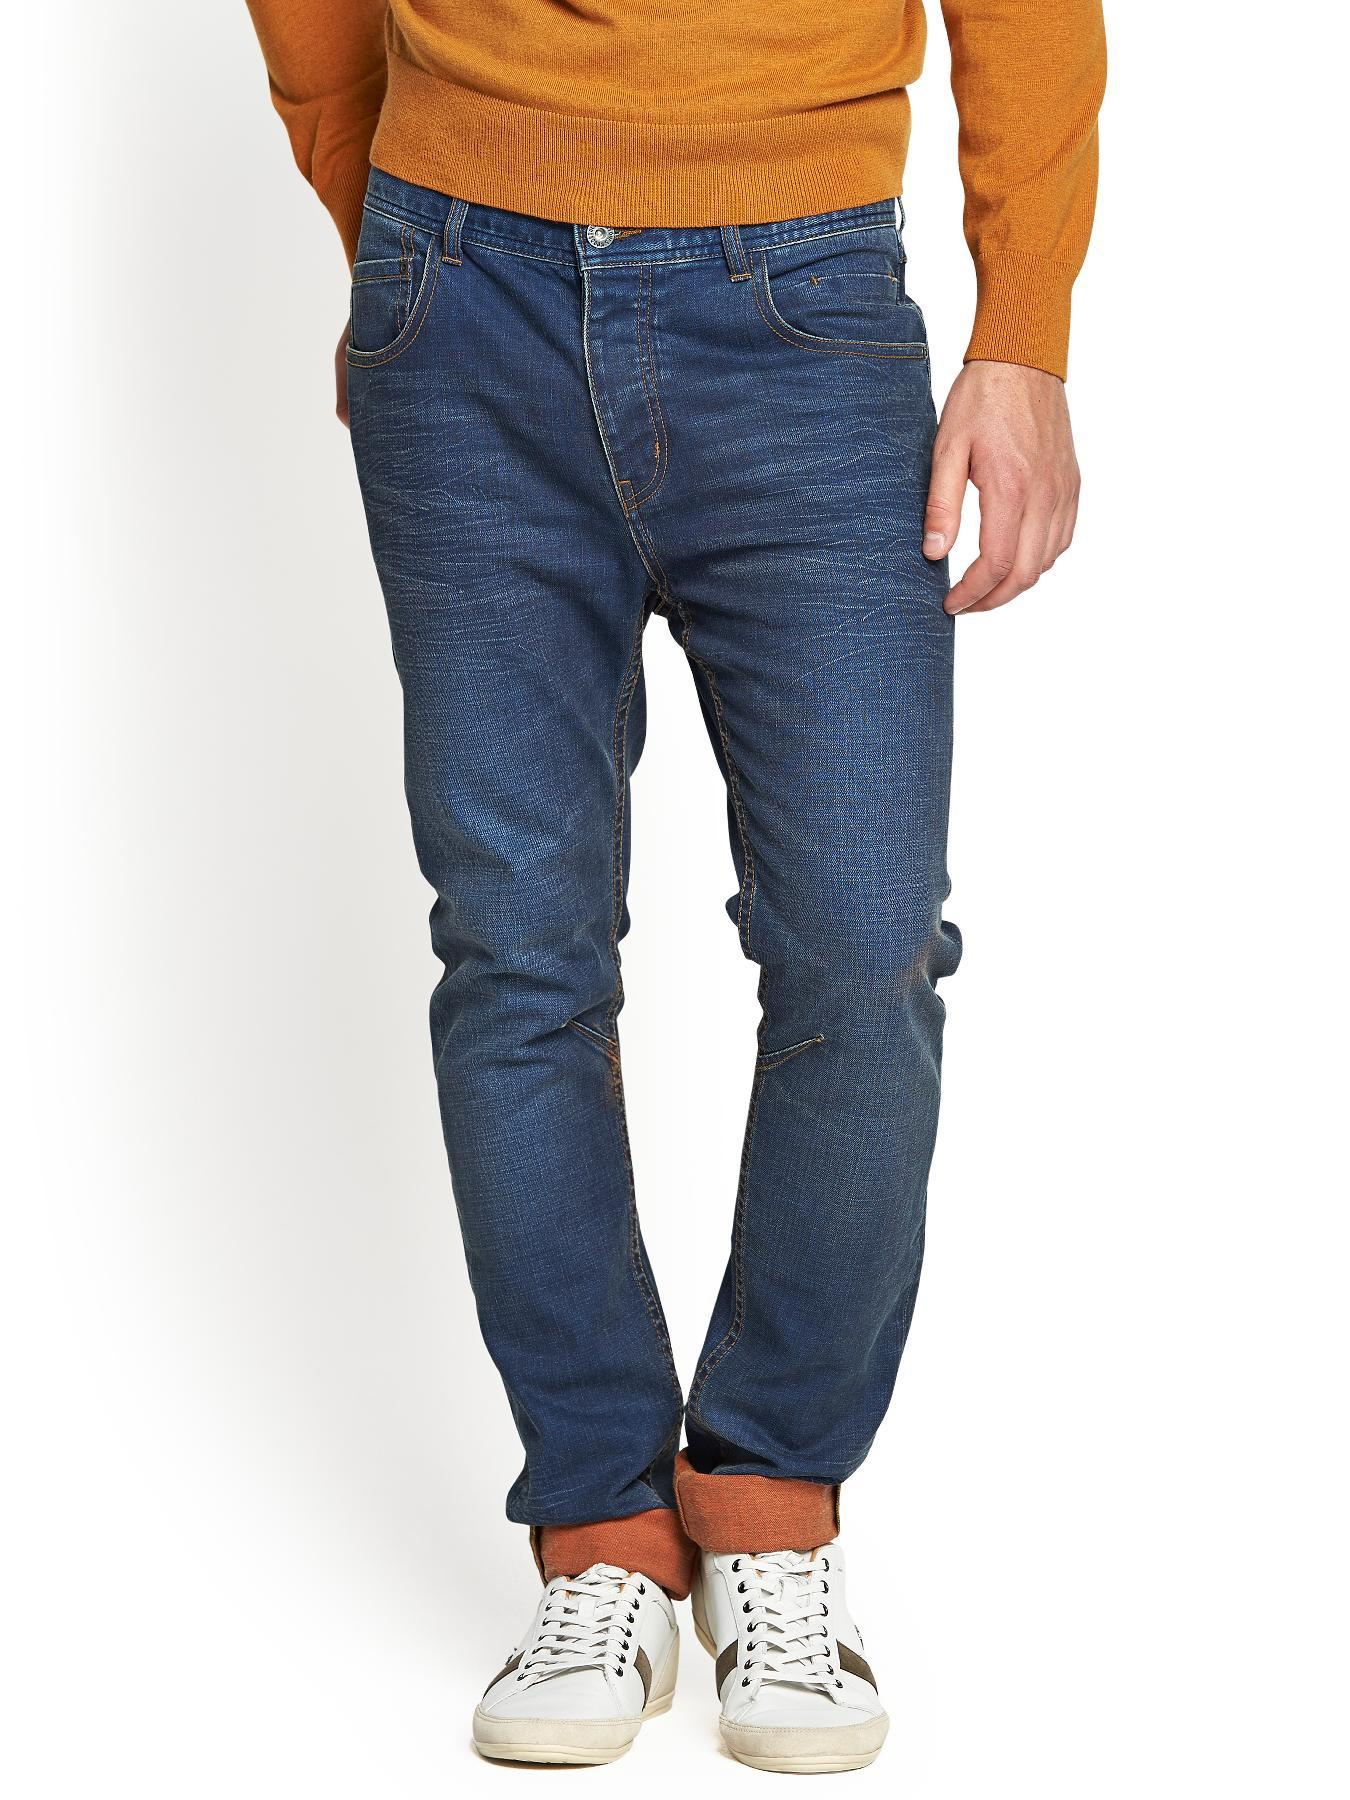 Mens Tapered Contrast Turn Up Jeans, Blue